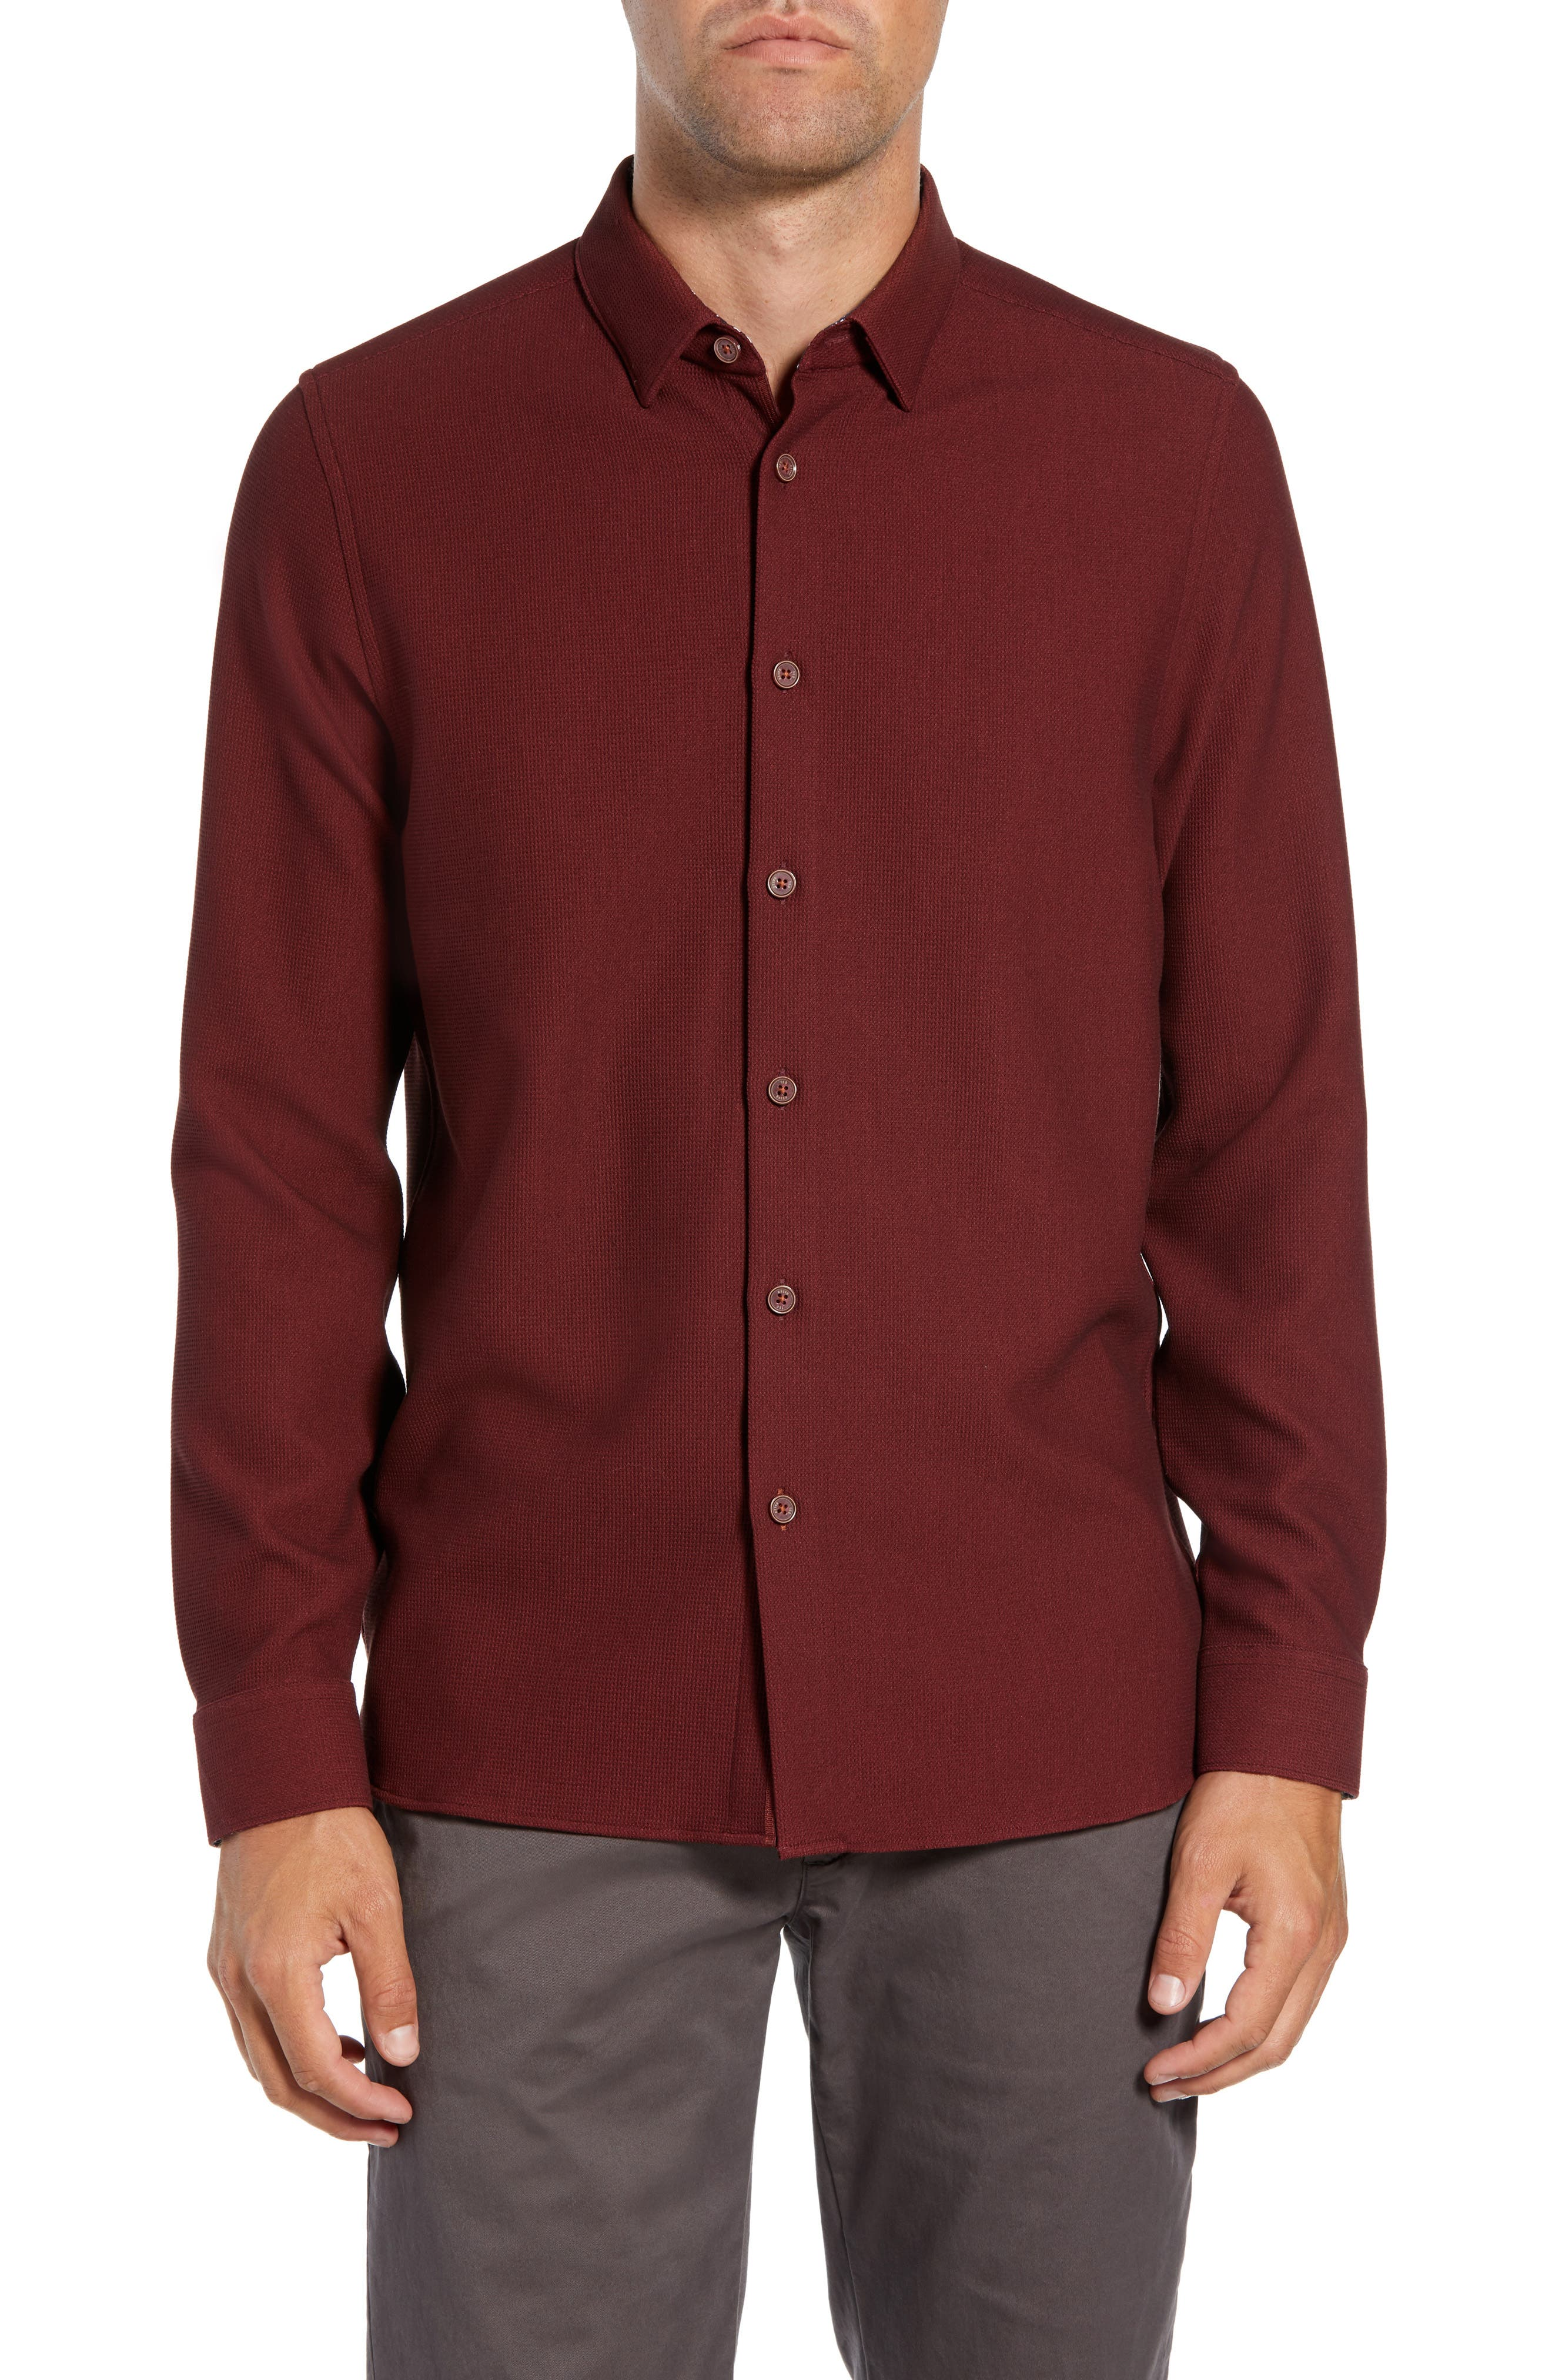 Piccatt Extra Slim Fit Stretch Solid Sport Shirt,                             Main thumbnail 1, color,                             DARK RED